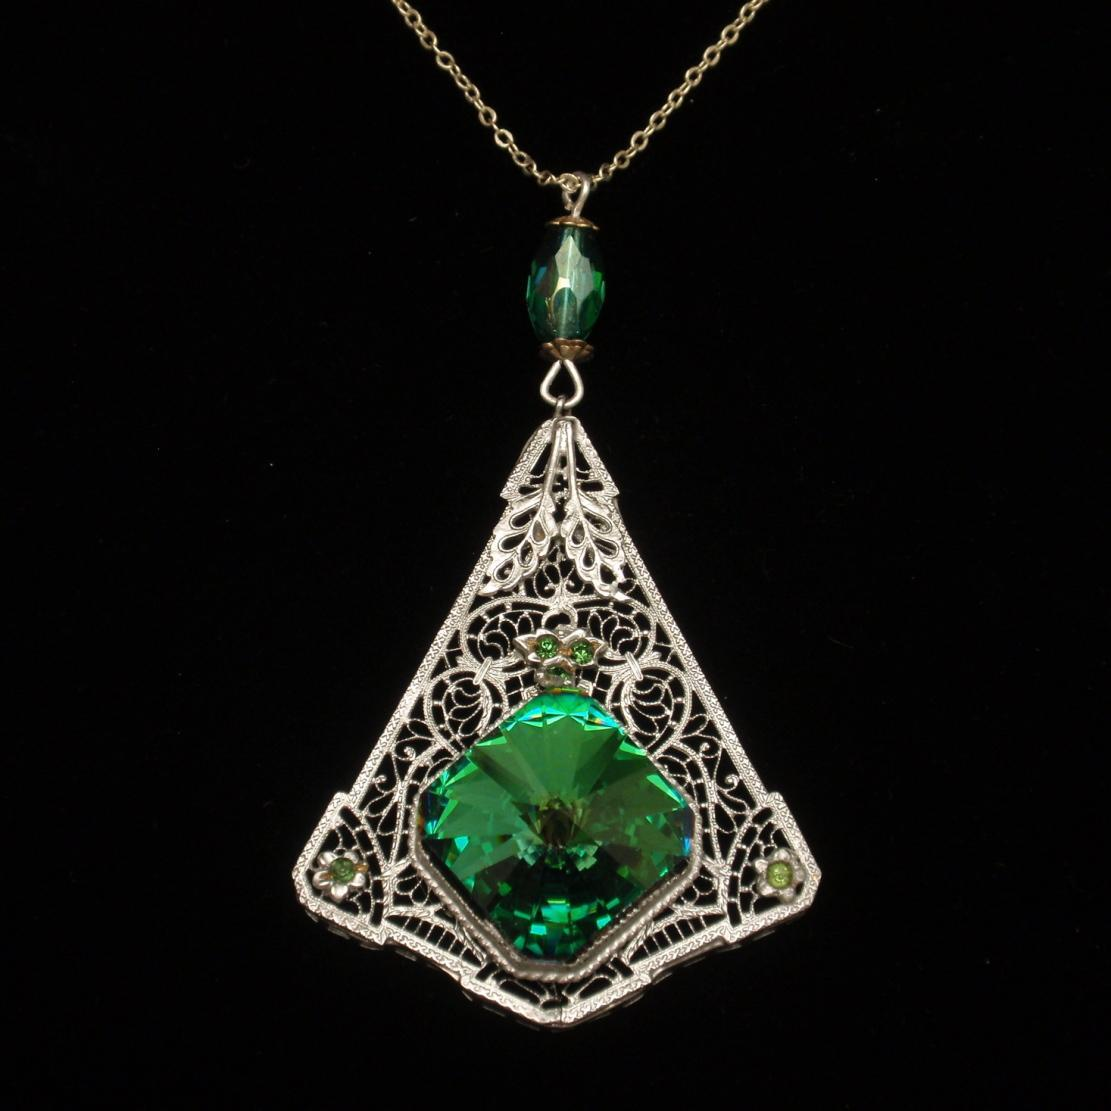 Filigree Pendant Necklace with Foil-Backed Large Stone